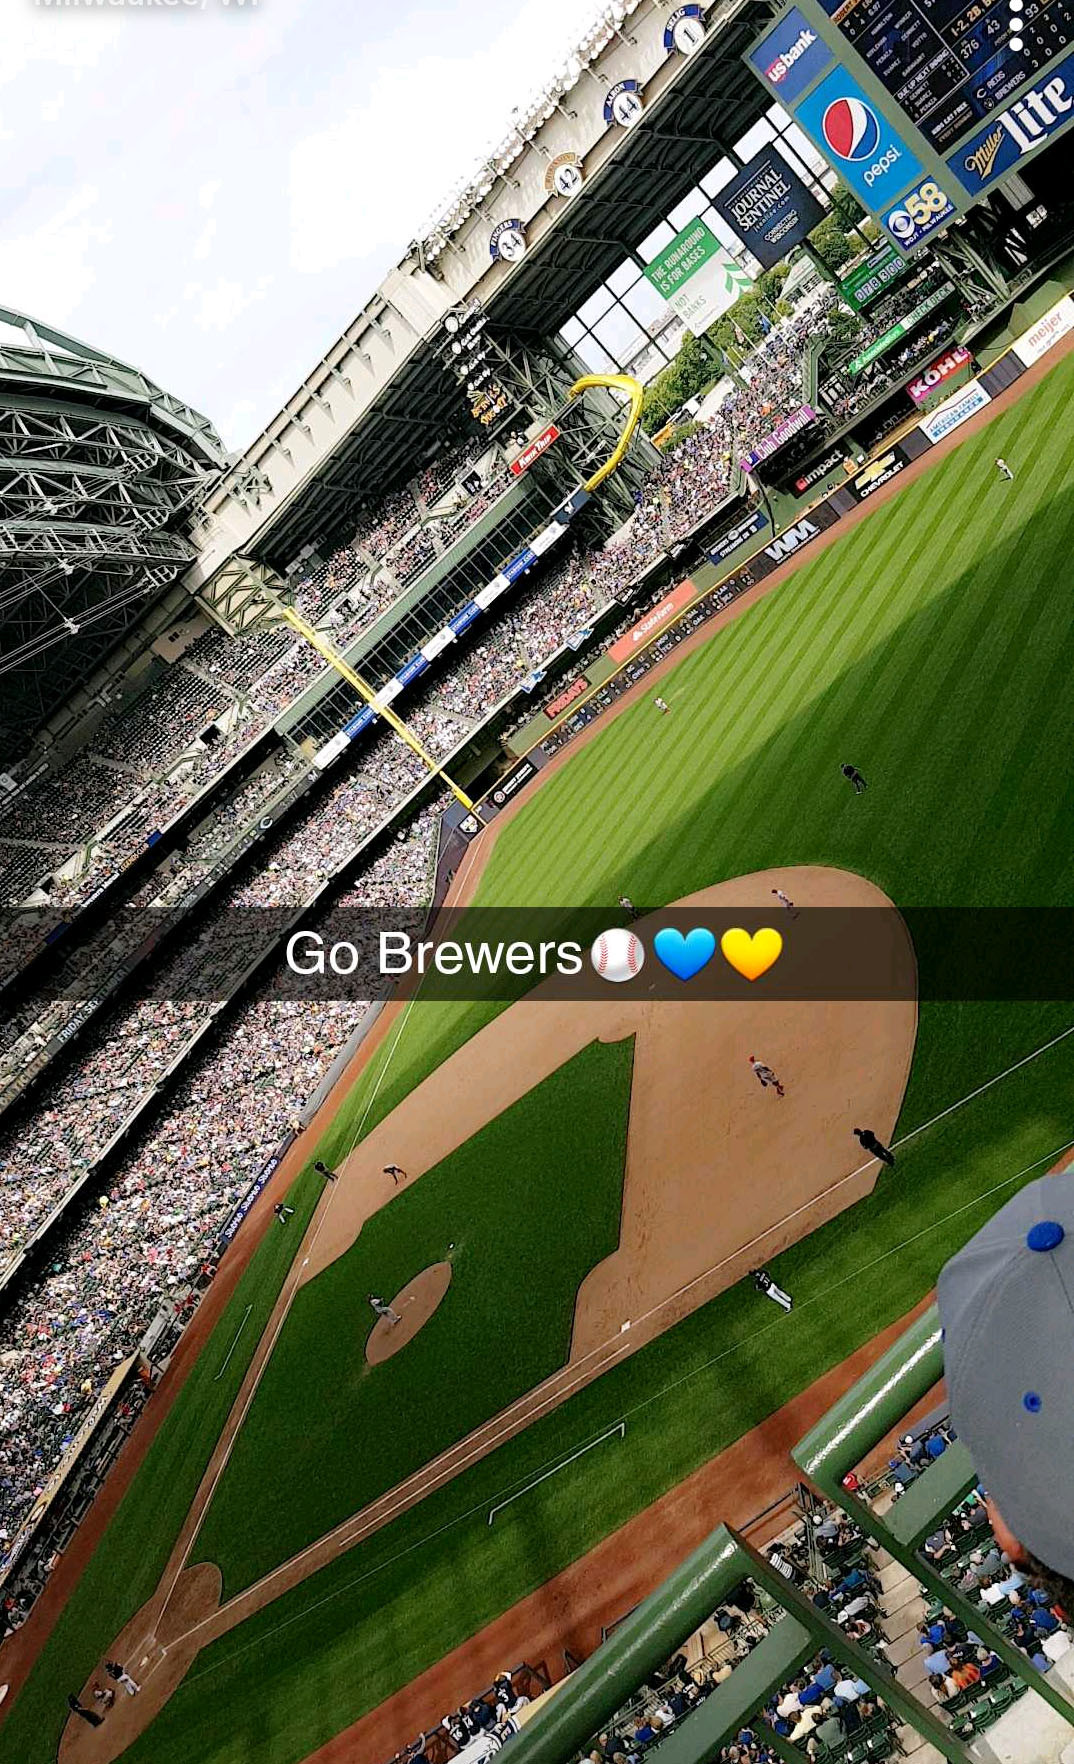 Baseball bei den Brewers | © Hanna Vogel / Baseball bei den Brewers